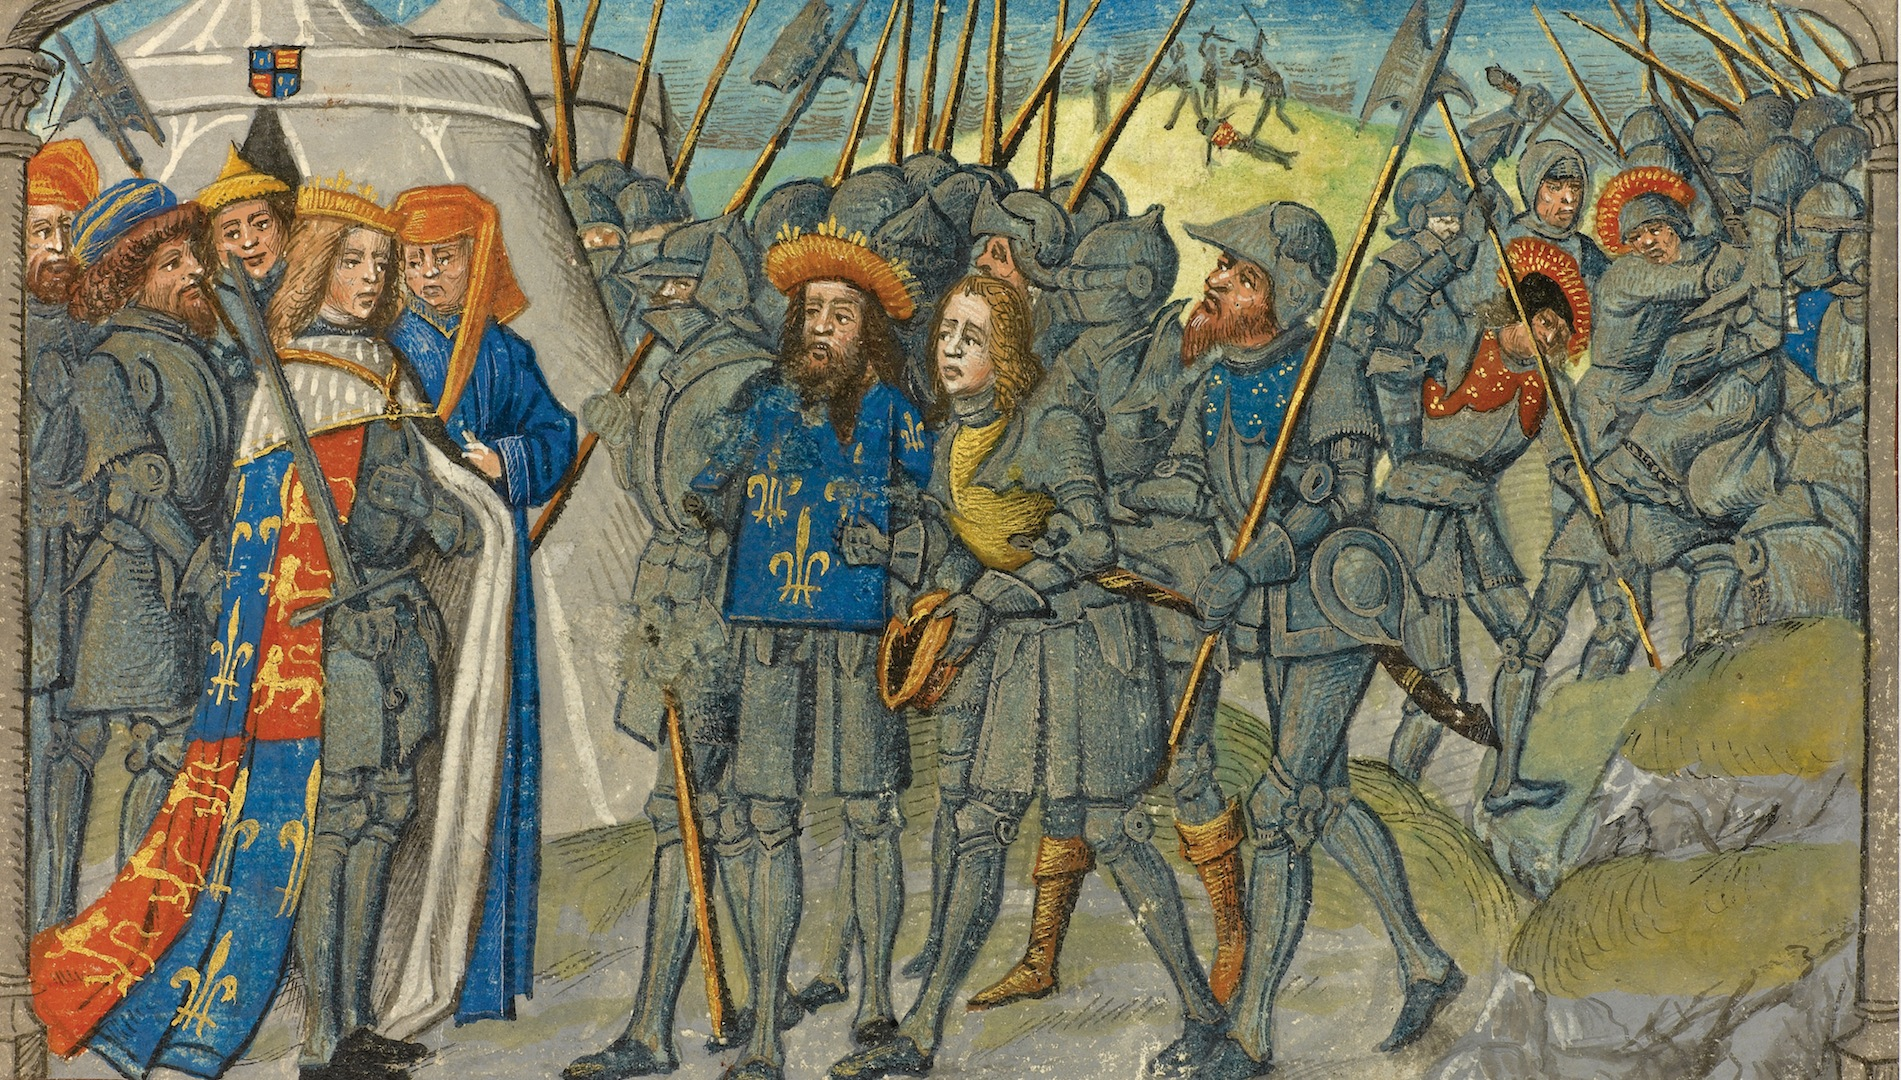 hundred years war Hello dudes here is the mod for mount & blade warband that focuses the hundred years war that was between english kingdom and french kingdom i'm not the developer it first develop by llew2 i decide to do some reworks on textures then release it here thanks for reading have fun and enjoy.